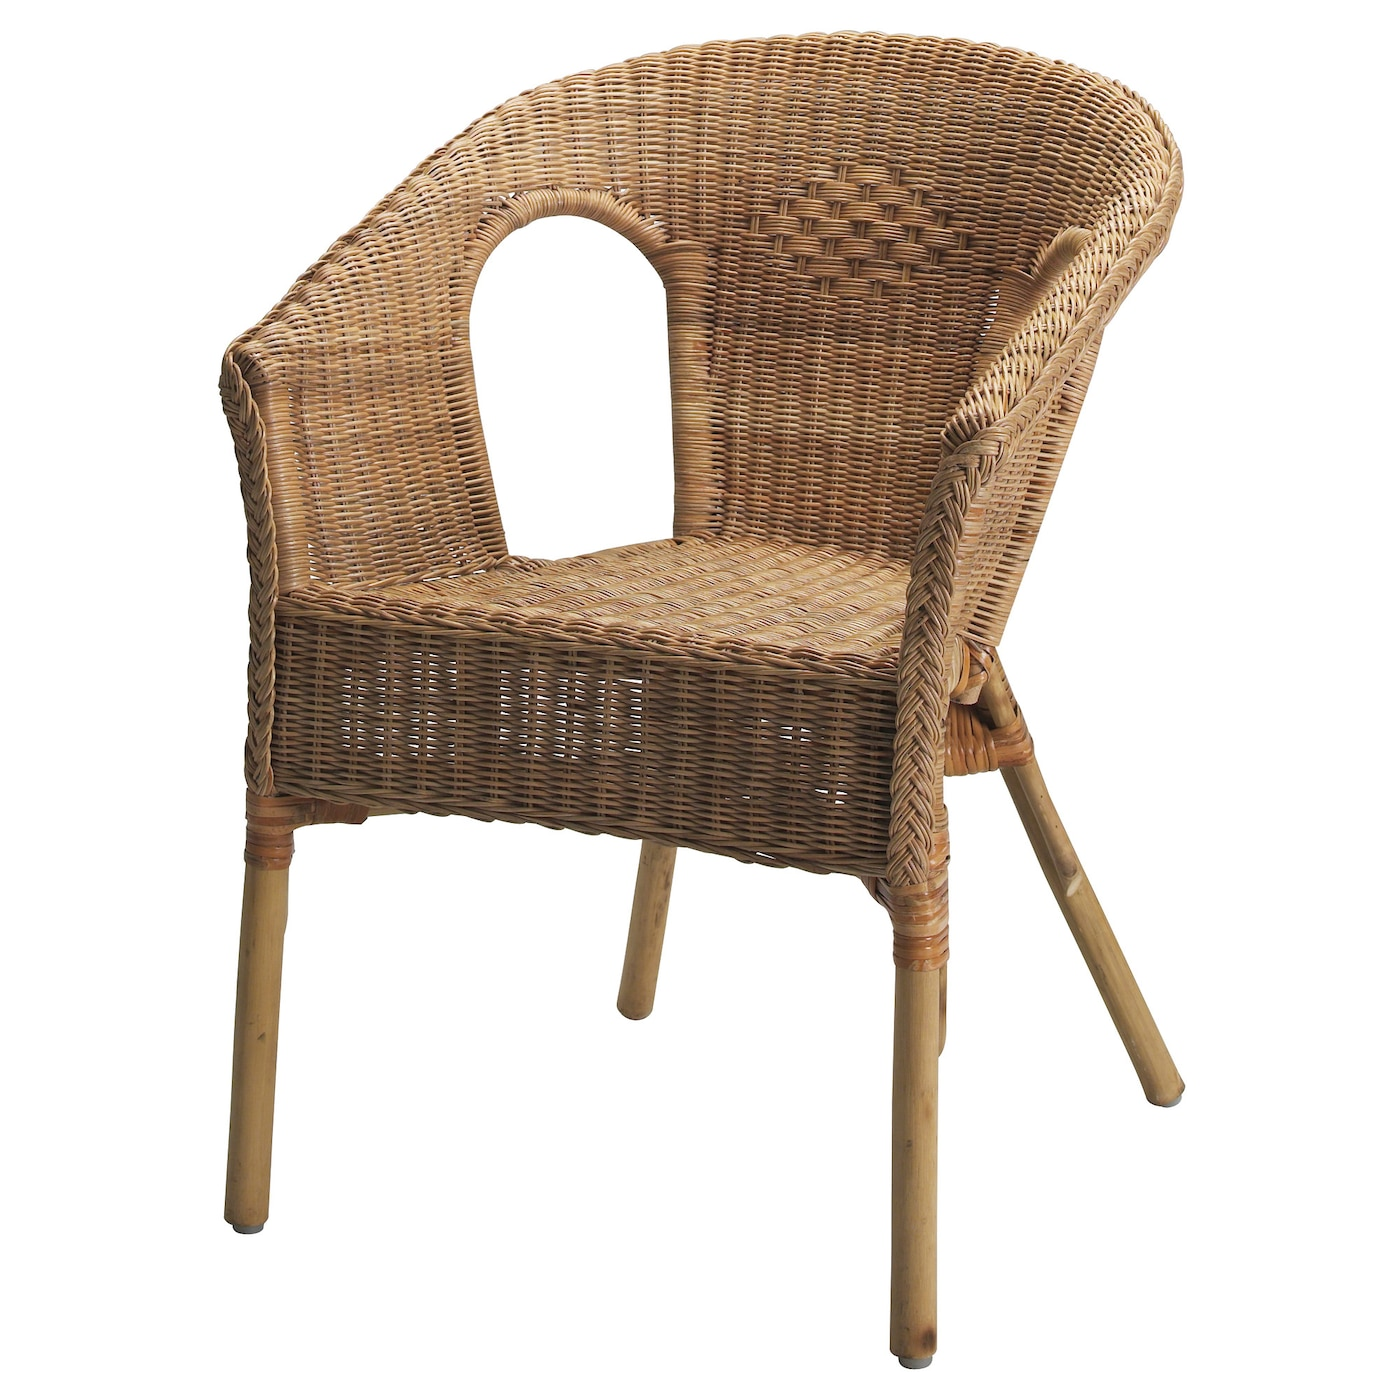 Rattan & Wicker Chairs | IKEA Ireland - Dublin